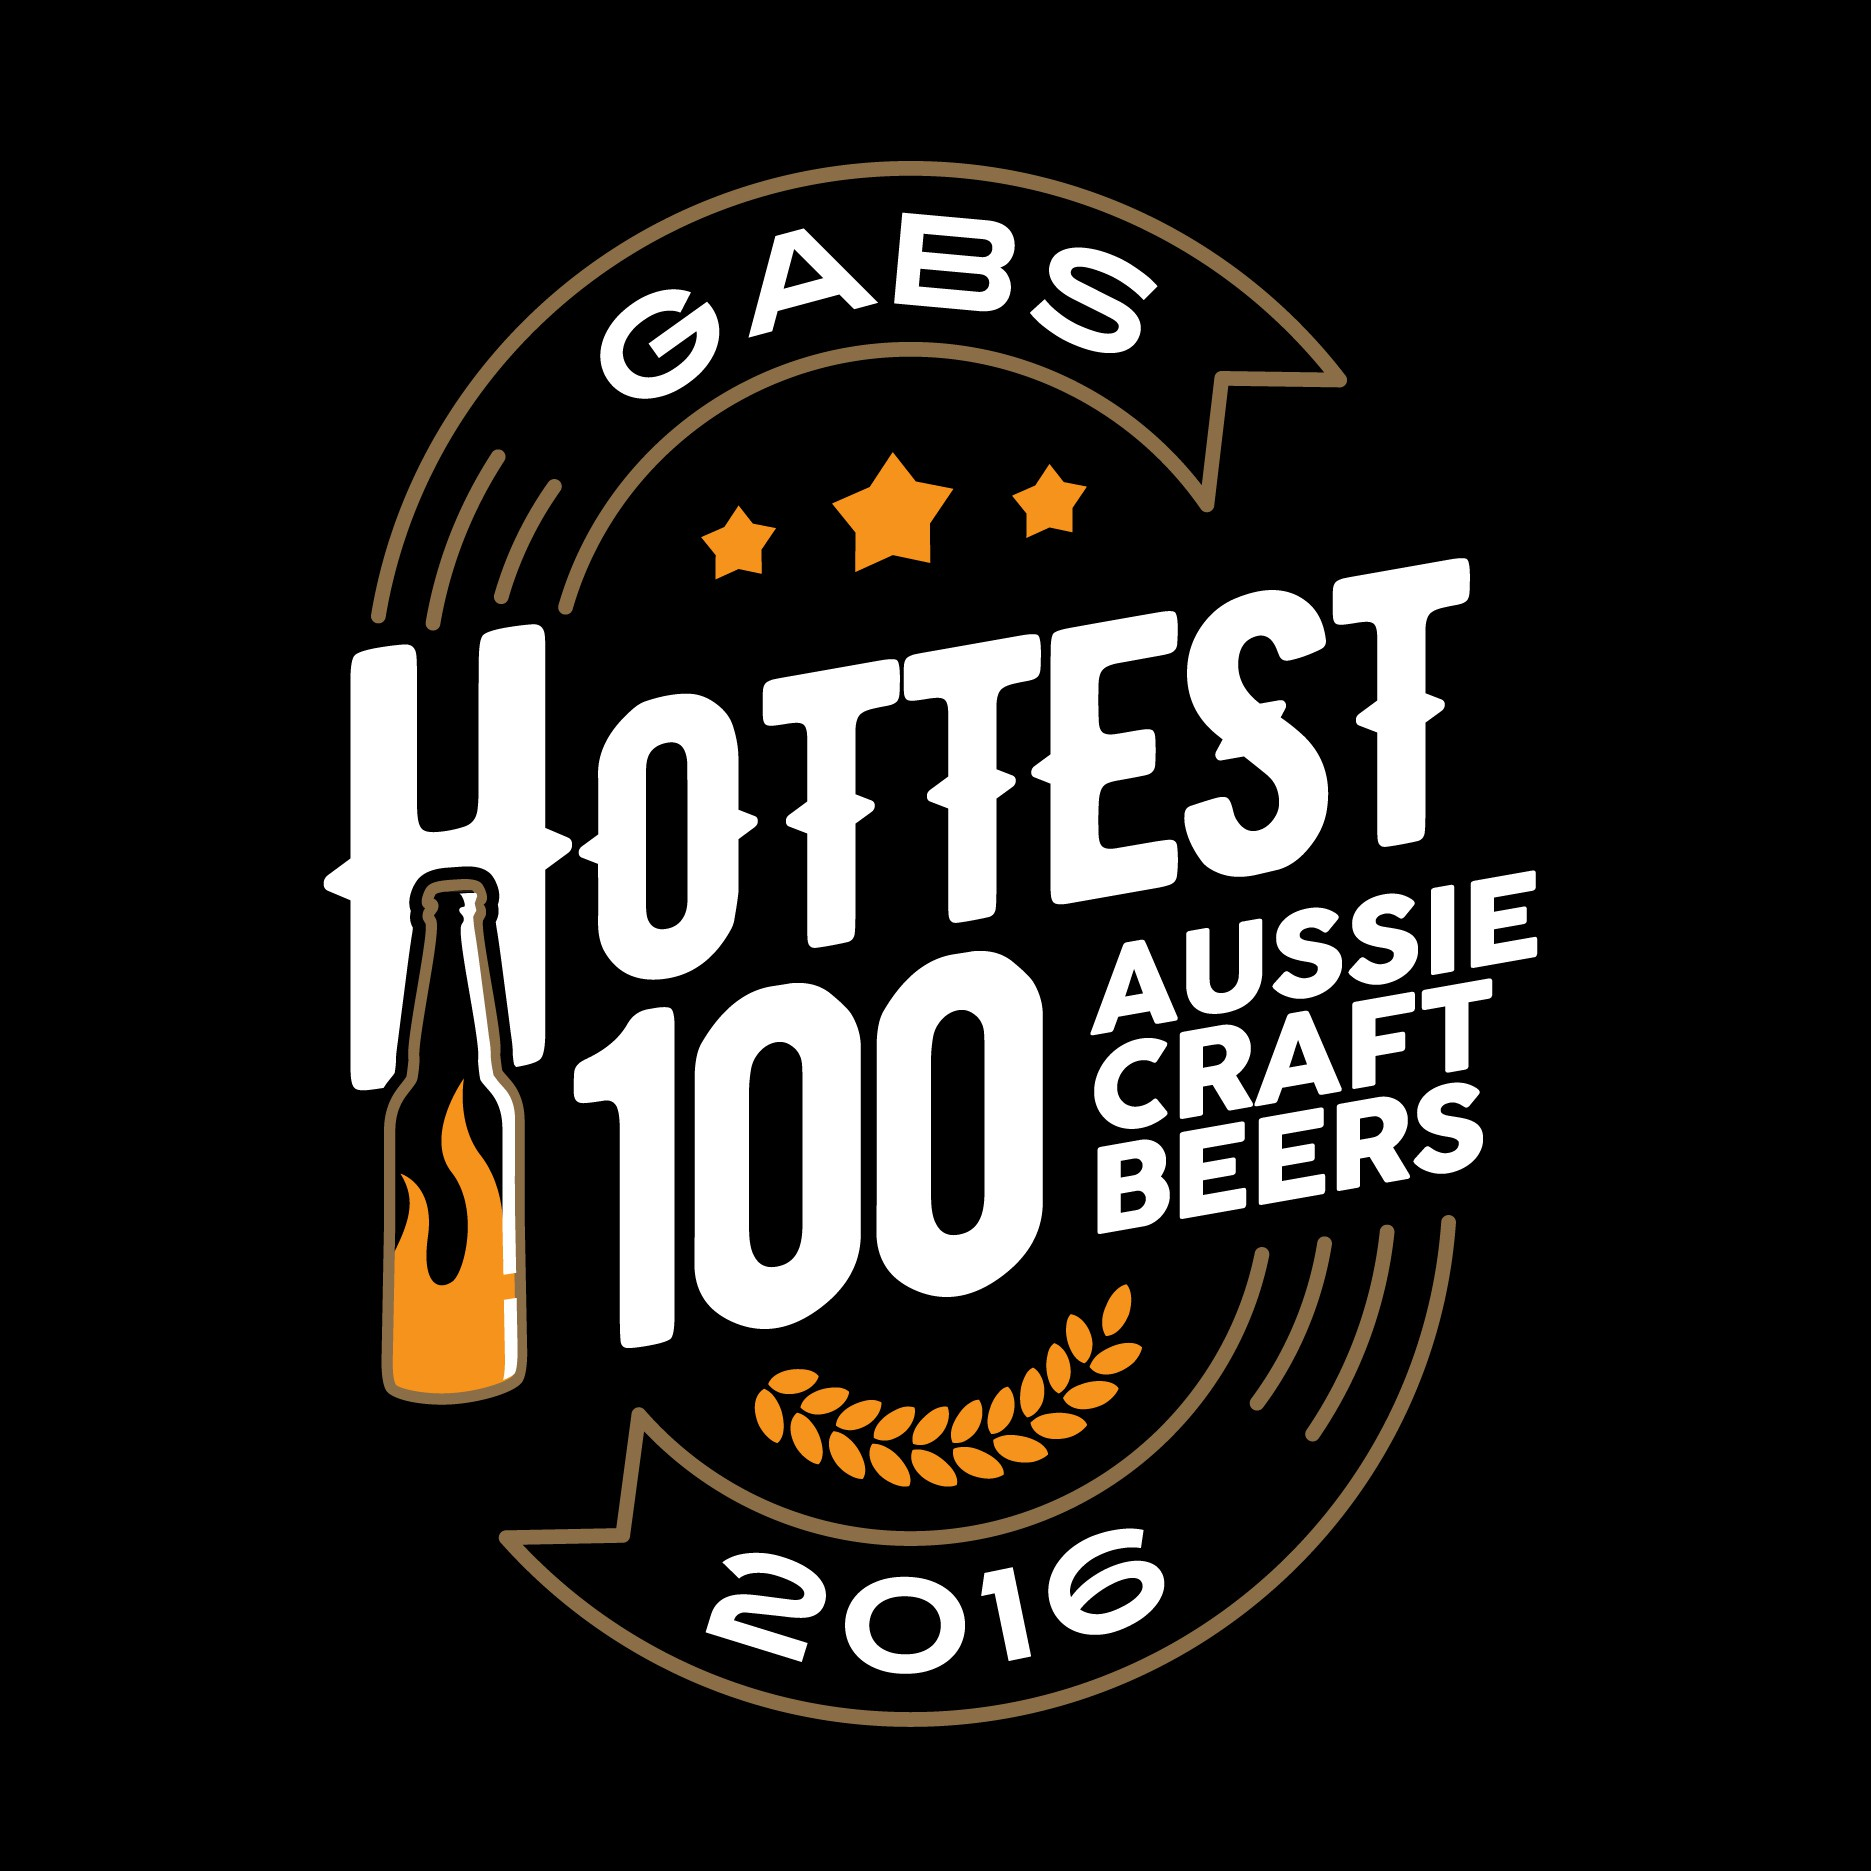 Design a stylish and fun logo for the Hottest 100 Aussie Craft Beers awards